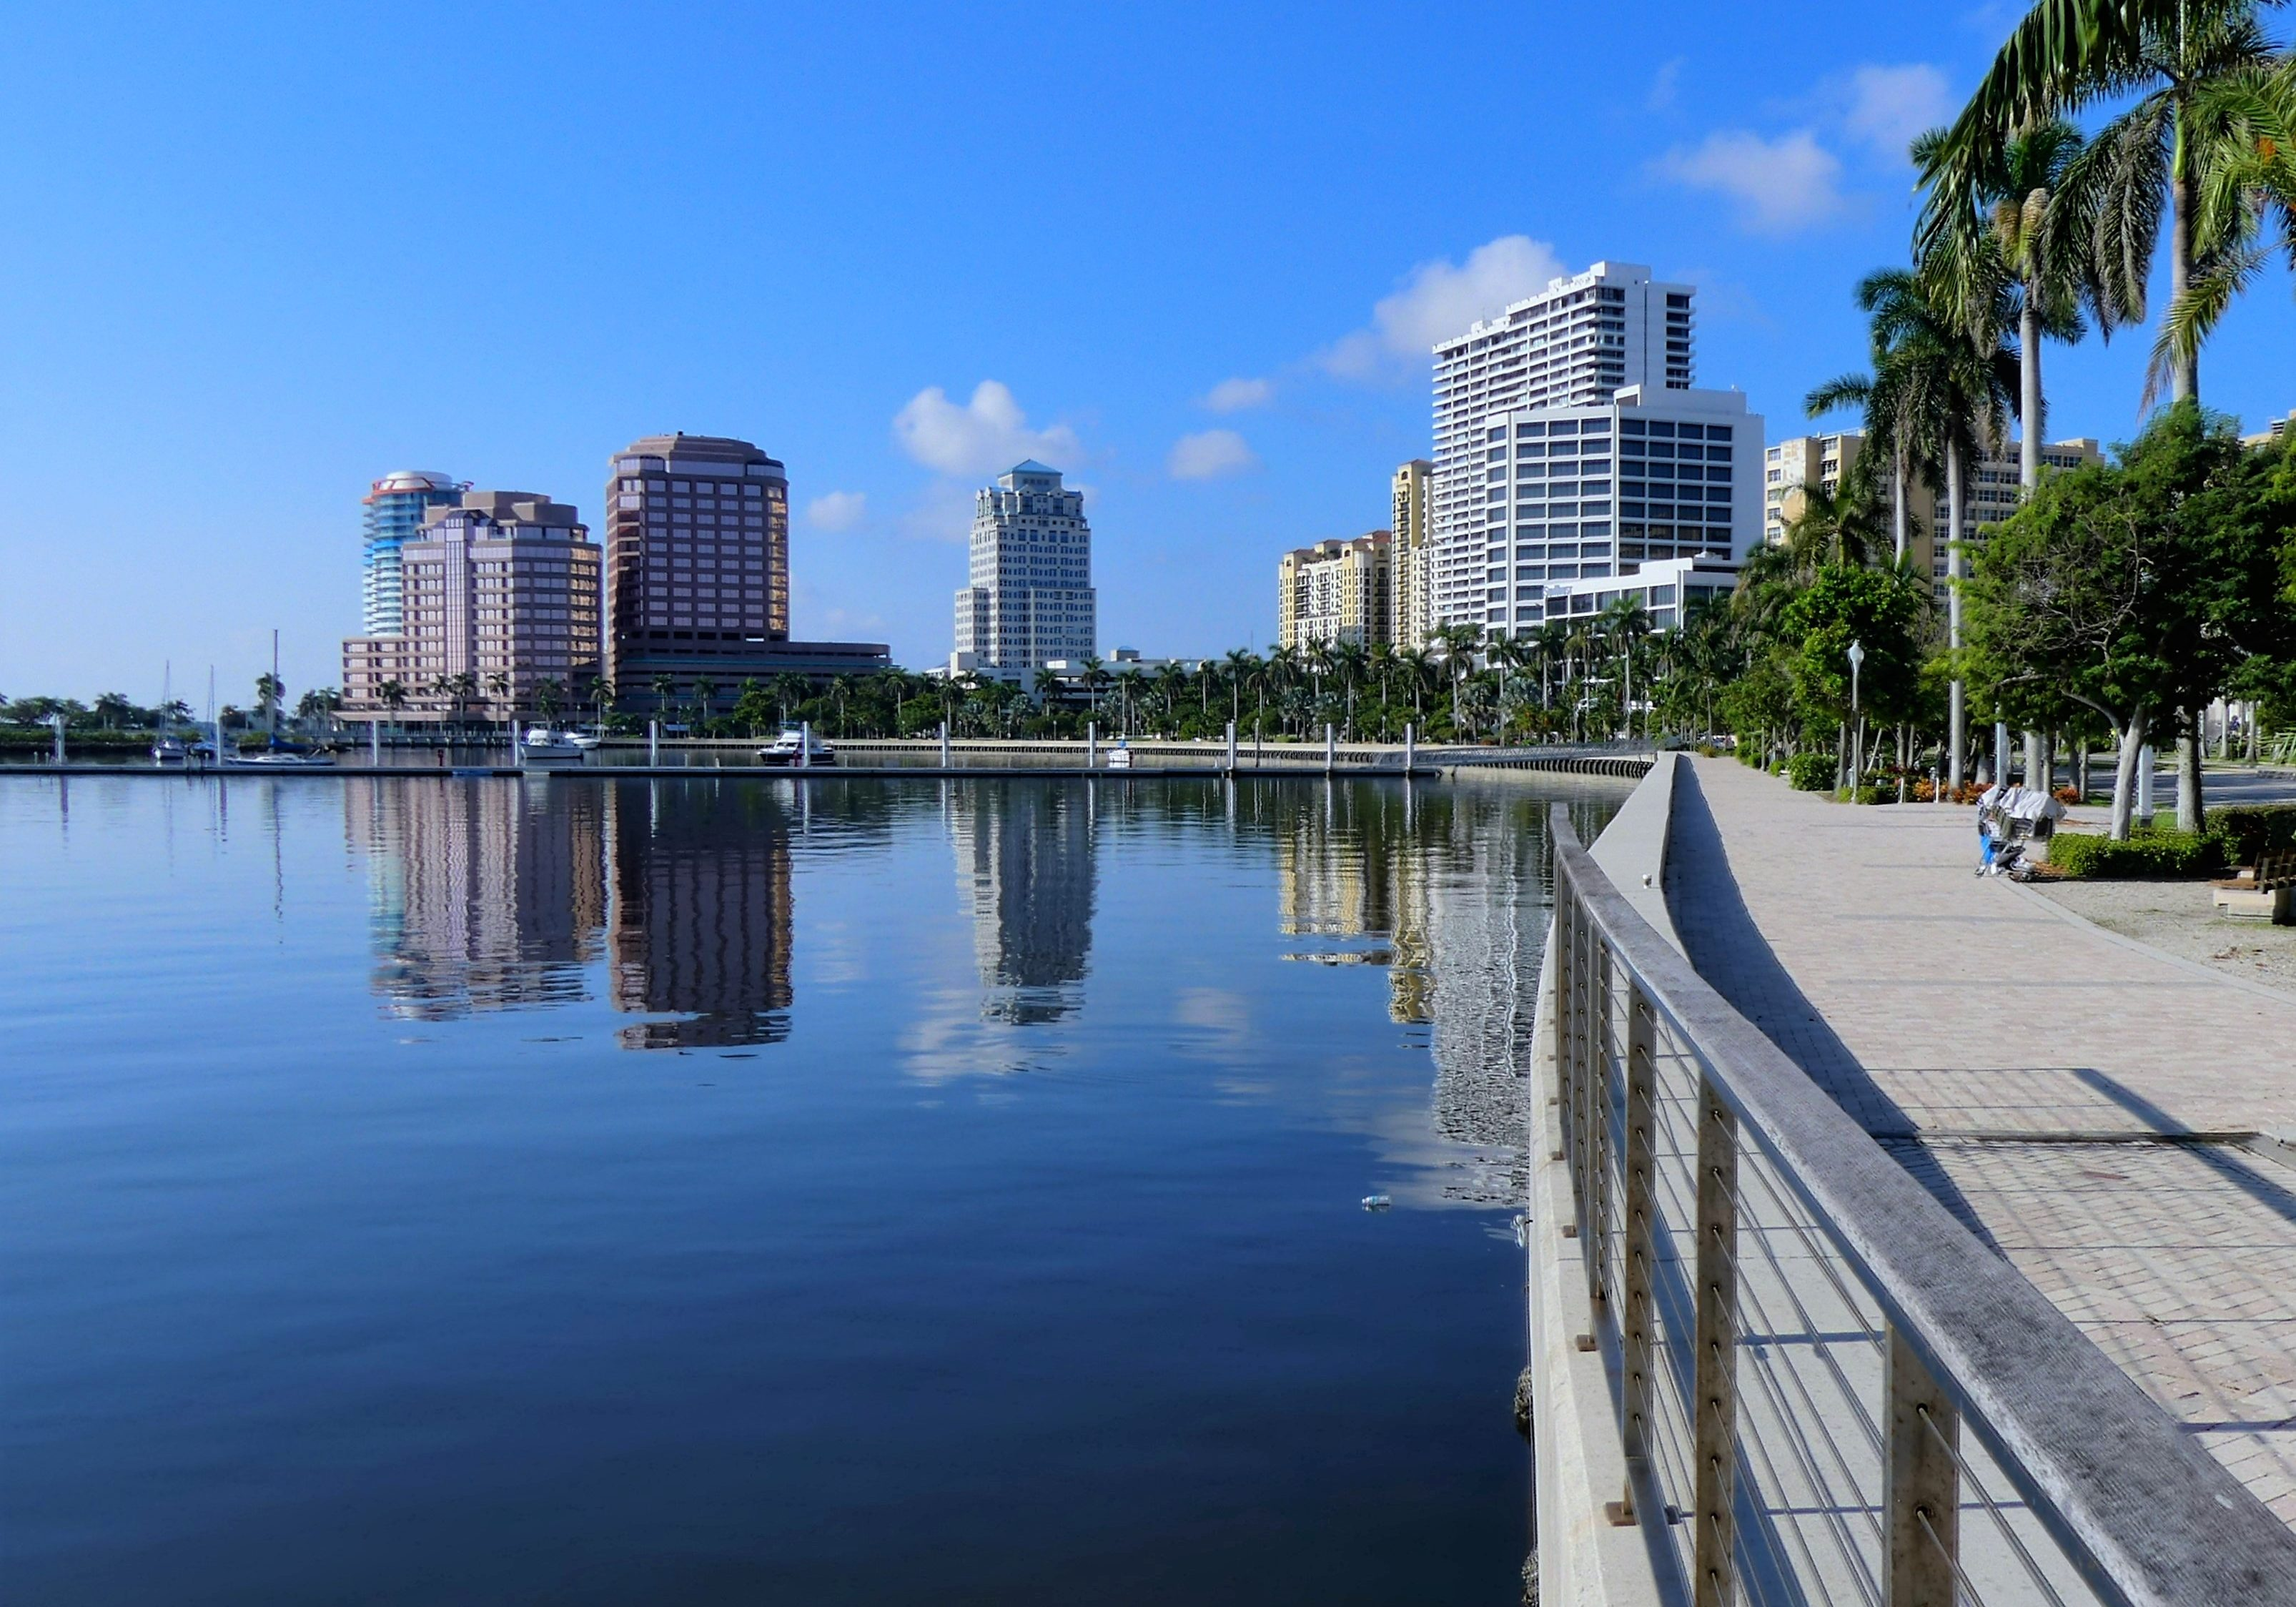 Image of West Palm Beach waterfront.